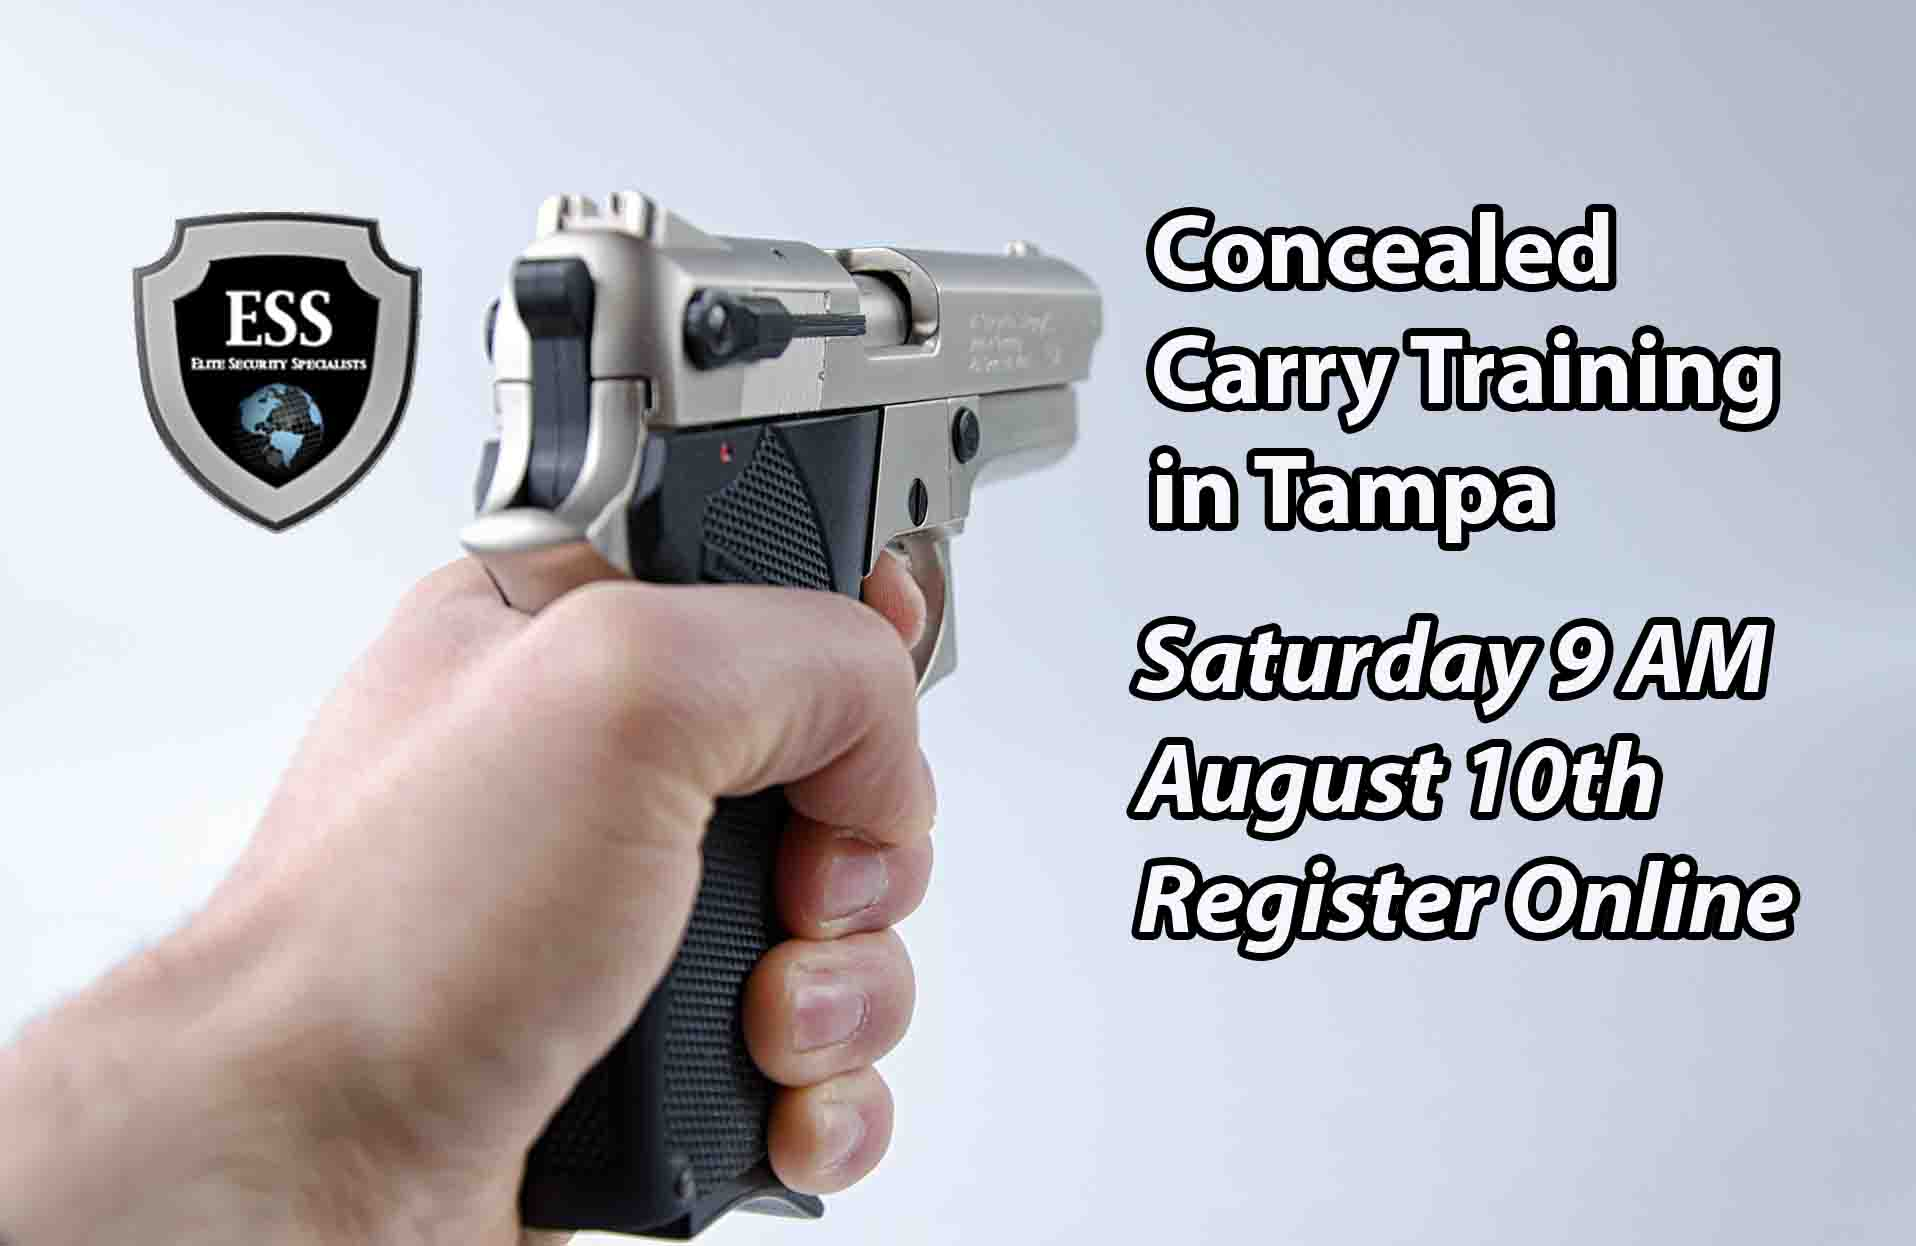 Tampa Concealed Carry Training Saturday August 10th at 9 AM